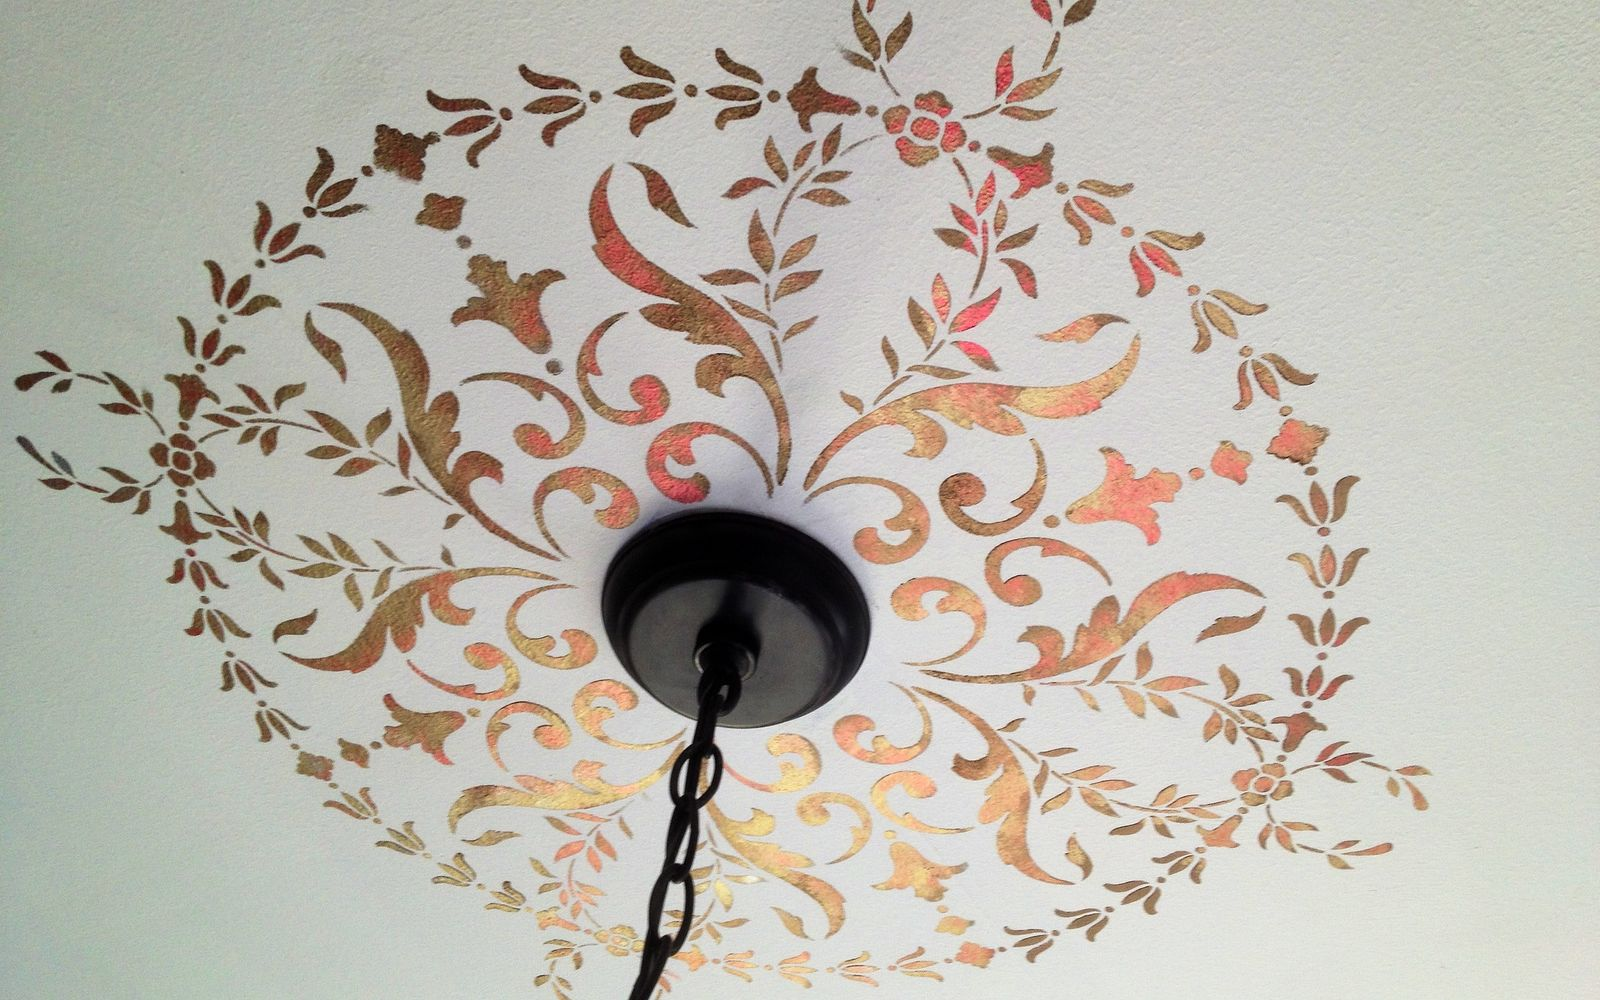 s 14 glamorous ways to upgrade your home using stencils, Stenciled Ceiling Medallion in Festive Metall